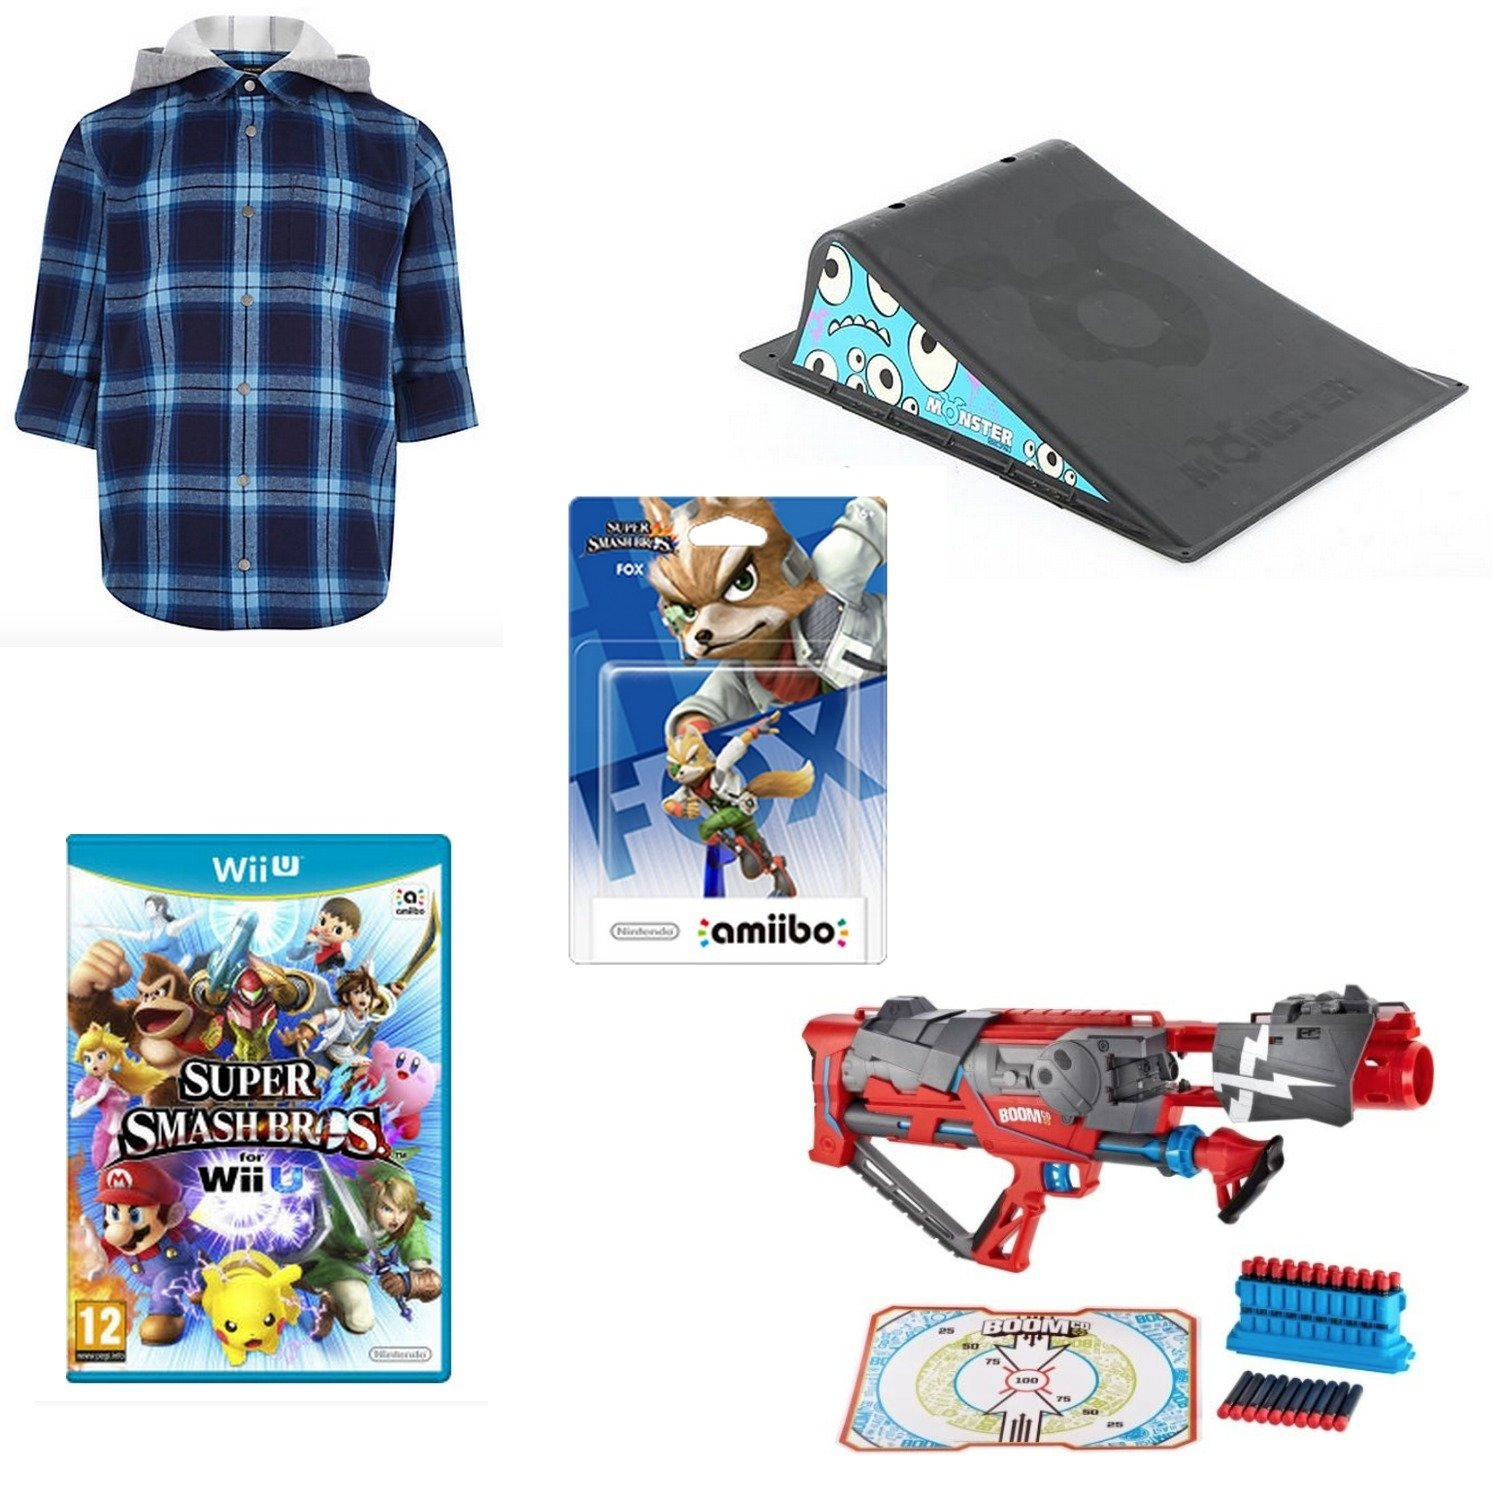 10 Ideal Christmas Ideas For 10 Year Old Boy christmas gifts for 10 year old boys family four fun 7 2021